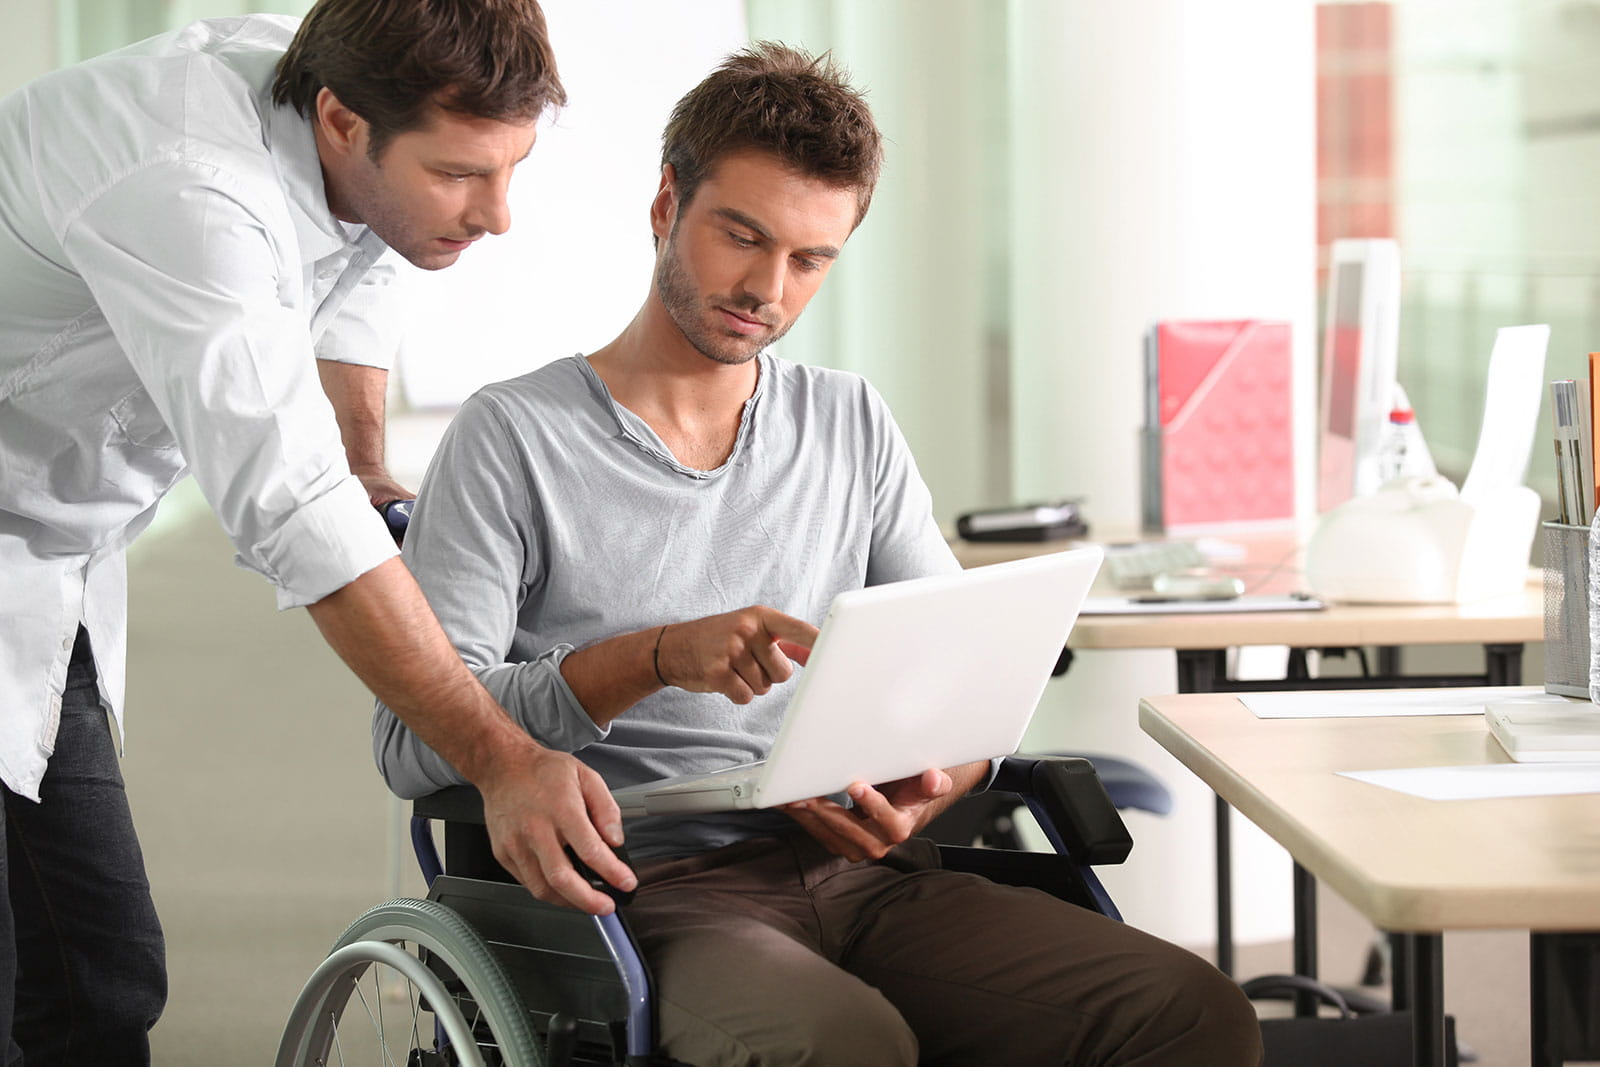 Meeting with a person in a wheelchair